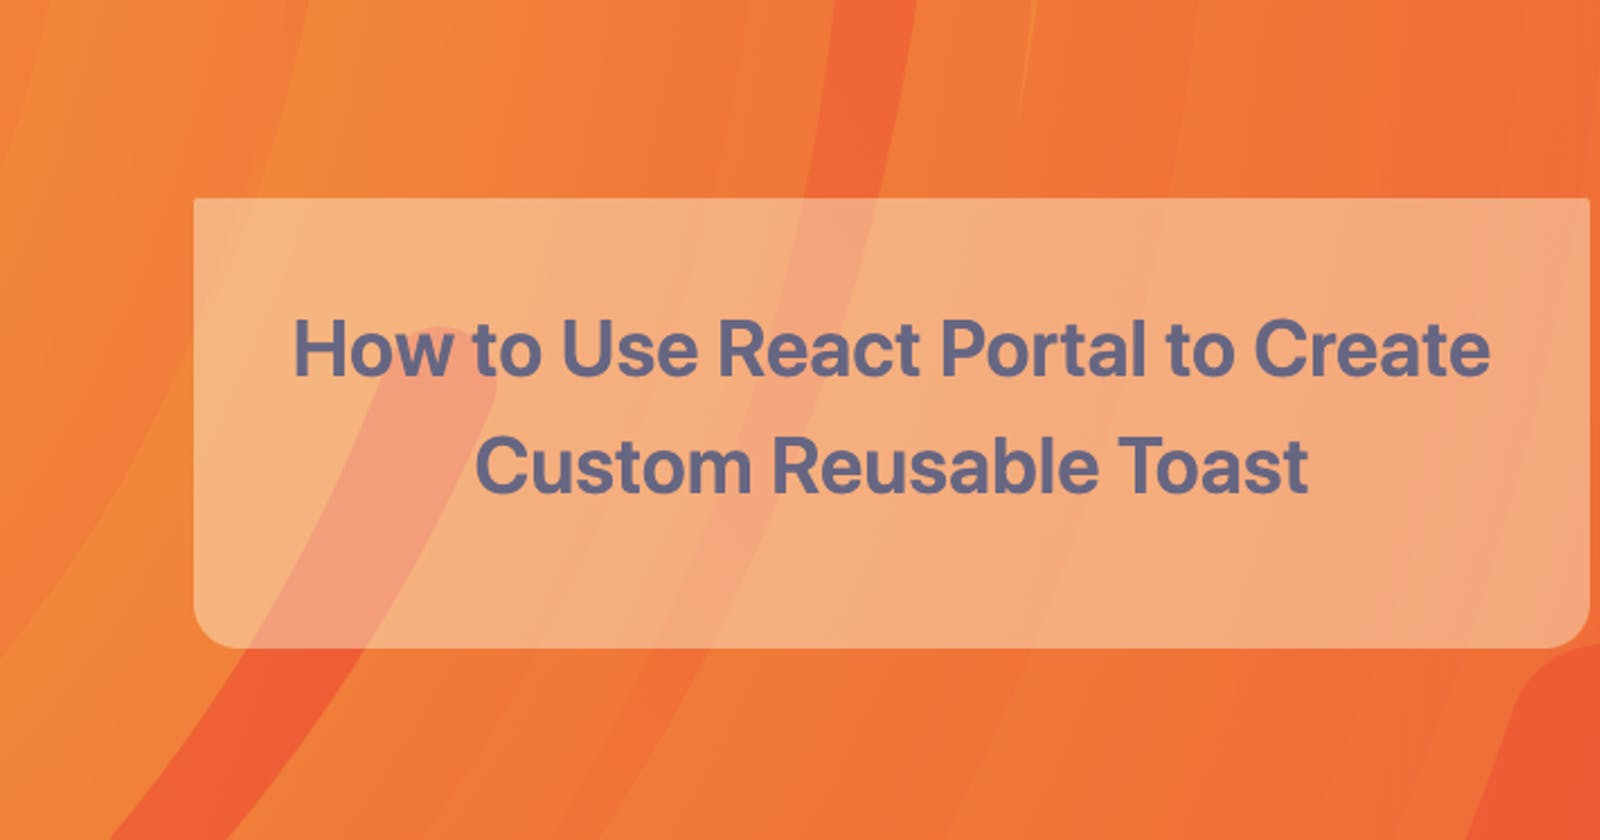 How to Use React Portal to Create Custom Reusable Toast Component in React